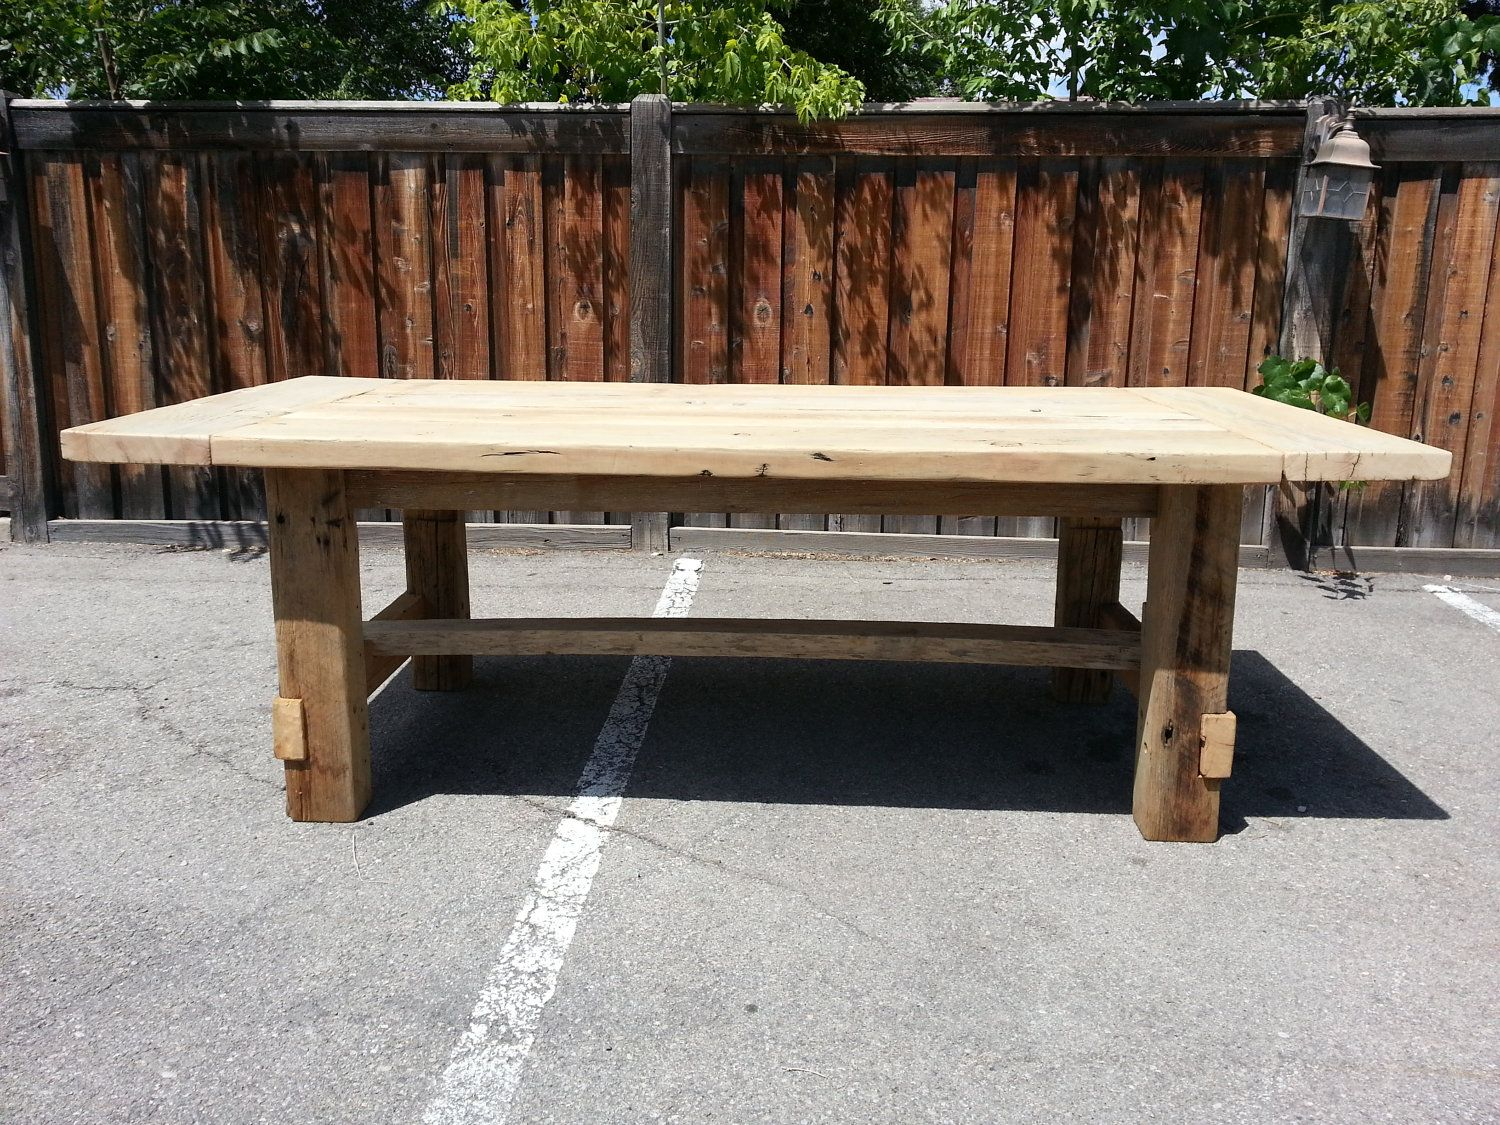 Farmhouse Salvaged Reclaimed Wood Rectangular Table Similar To Restoration Hardware Design But Not Made In